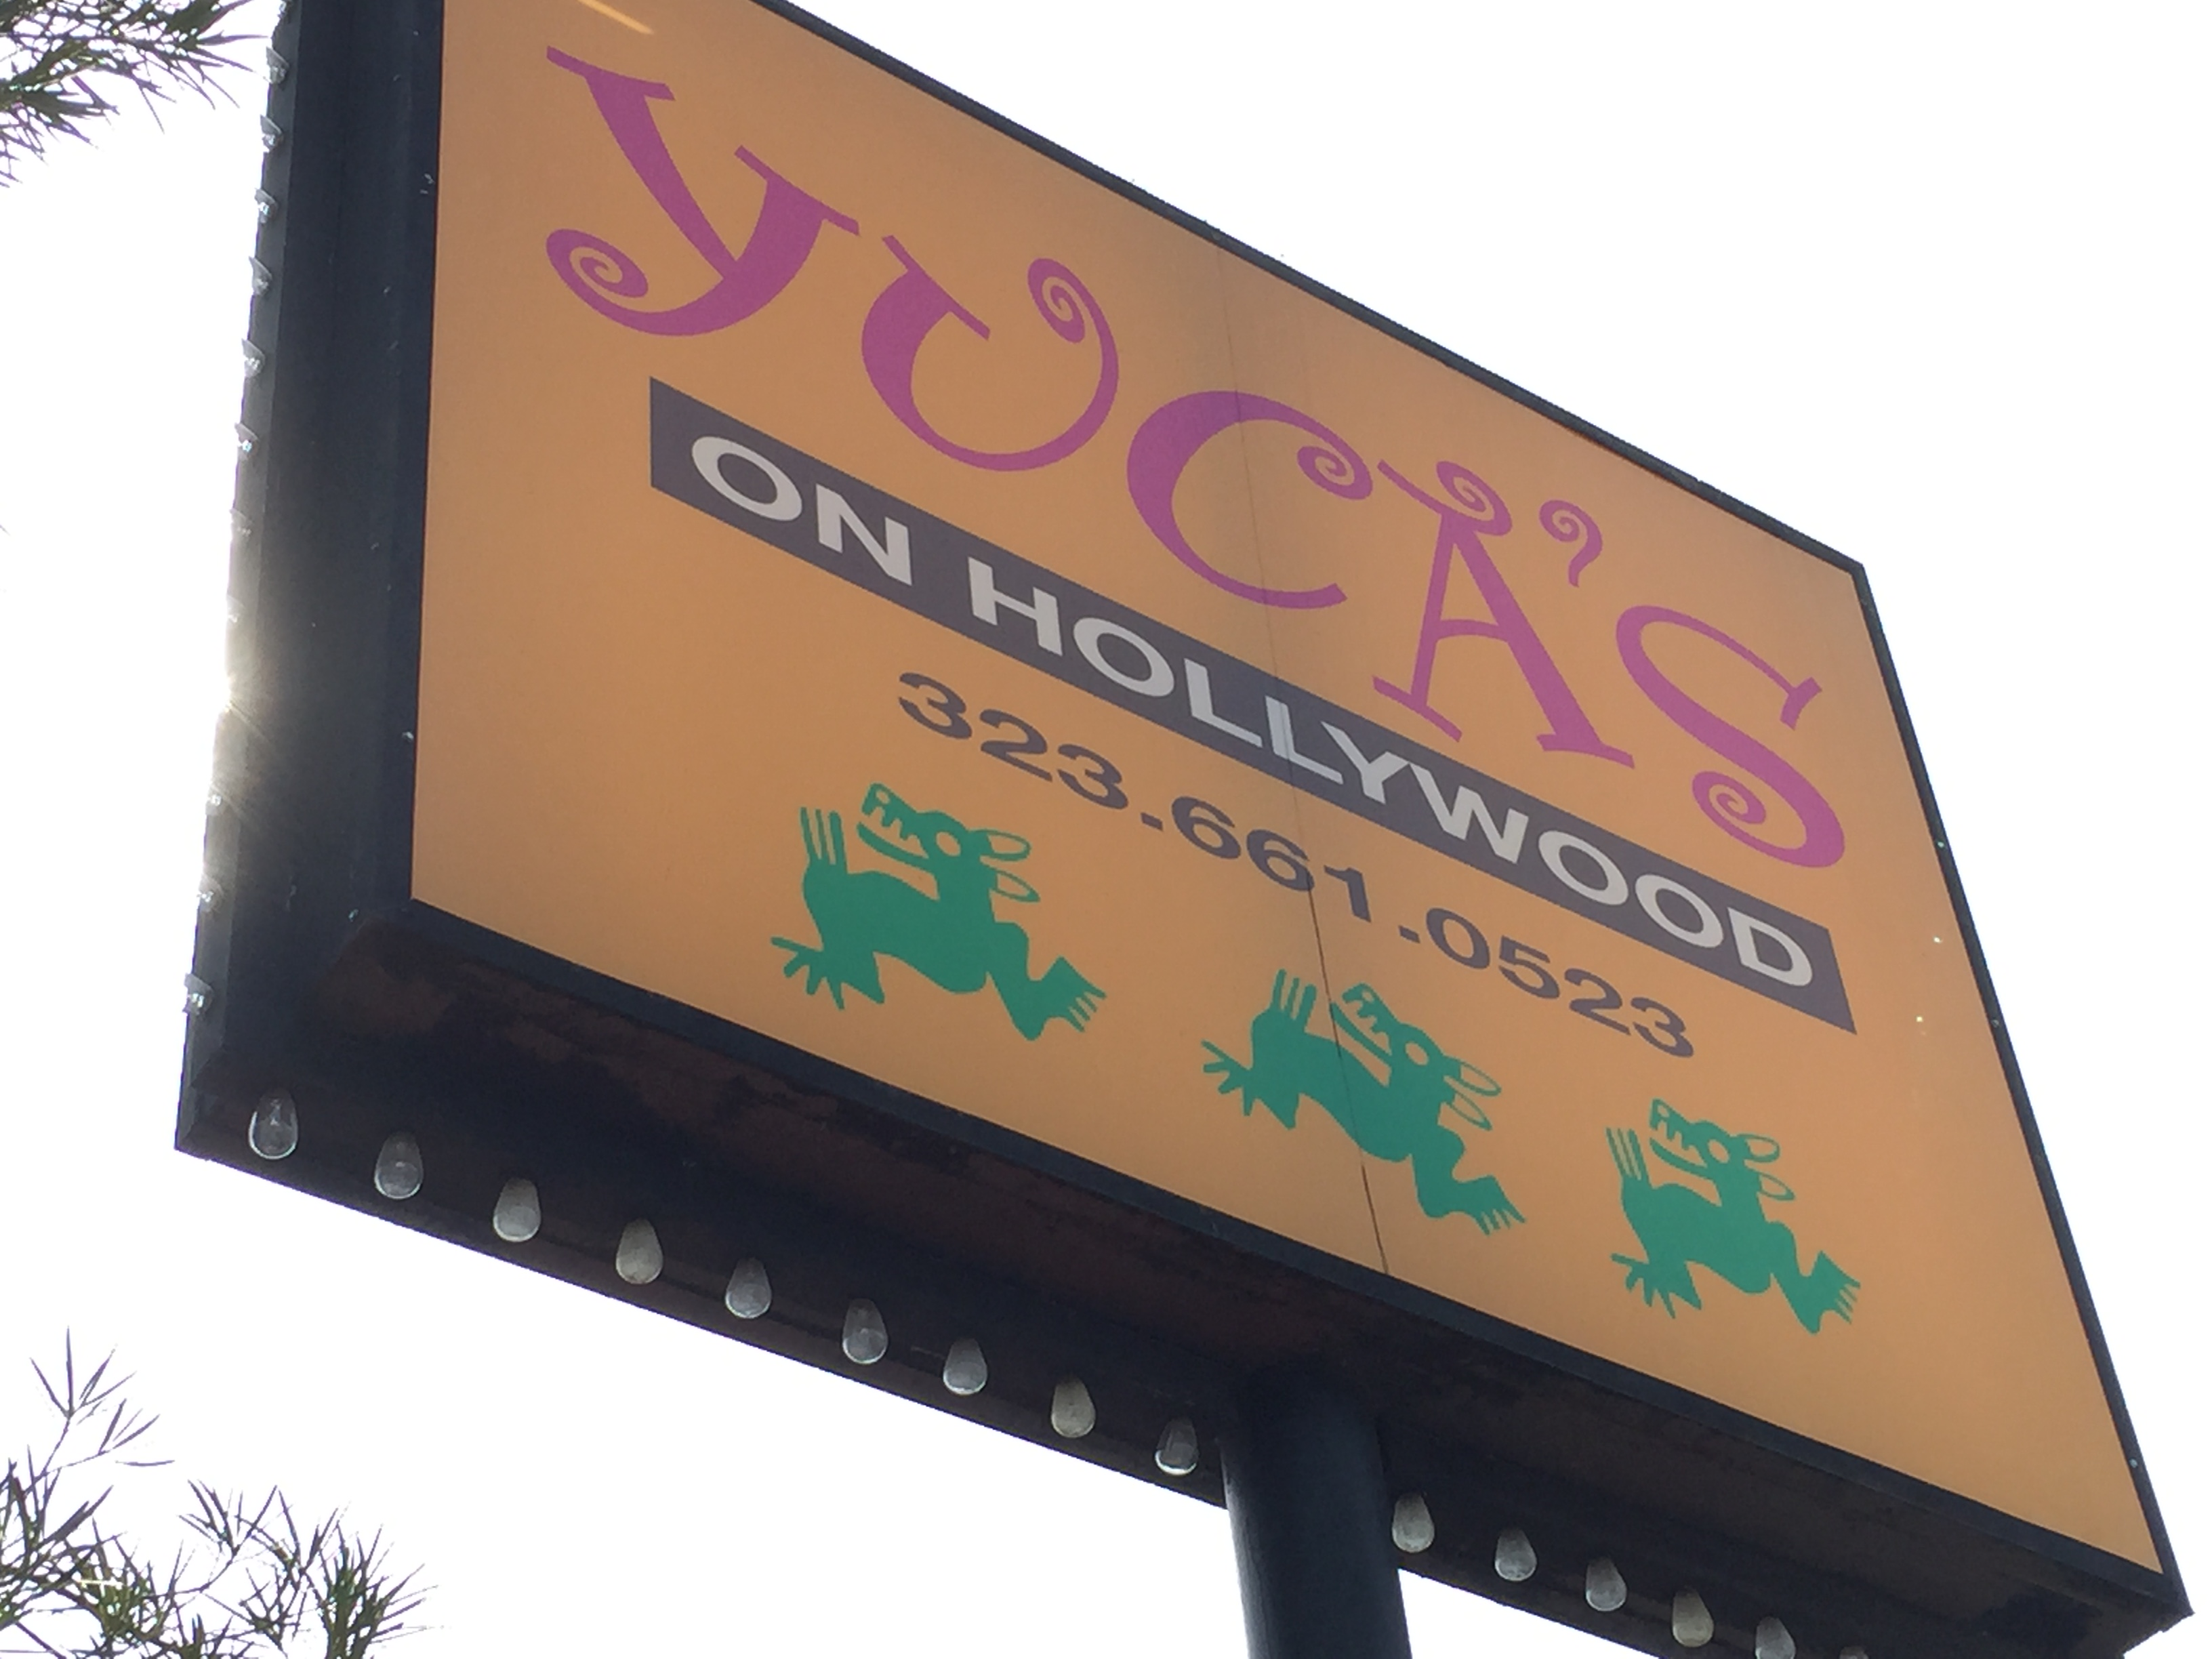 Yuca's on Hollywood